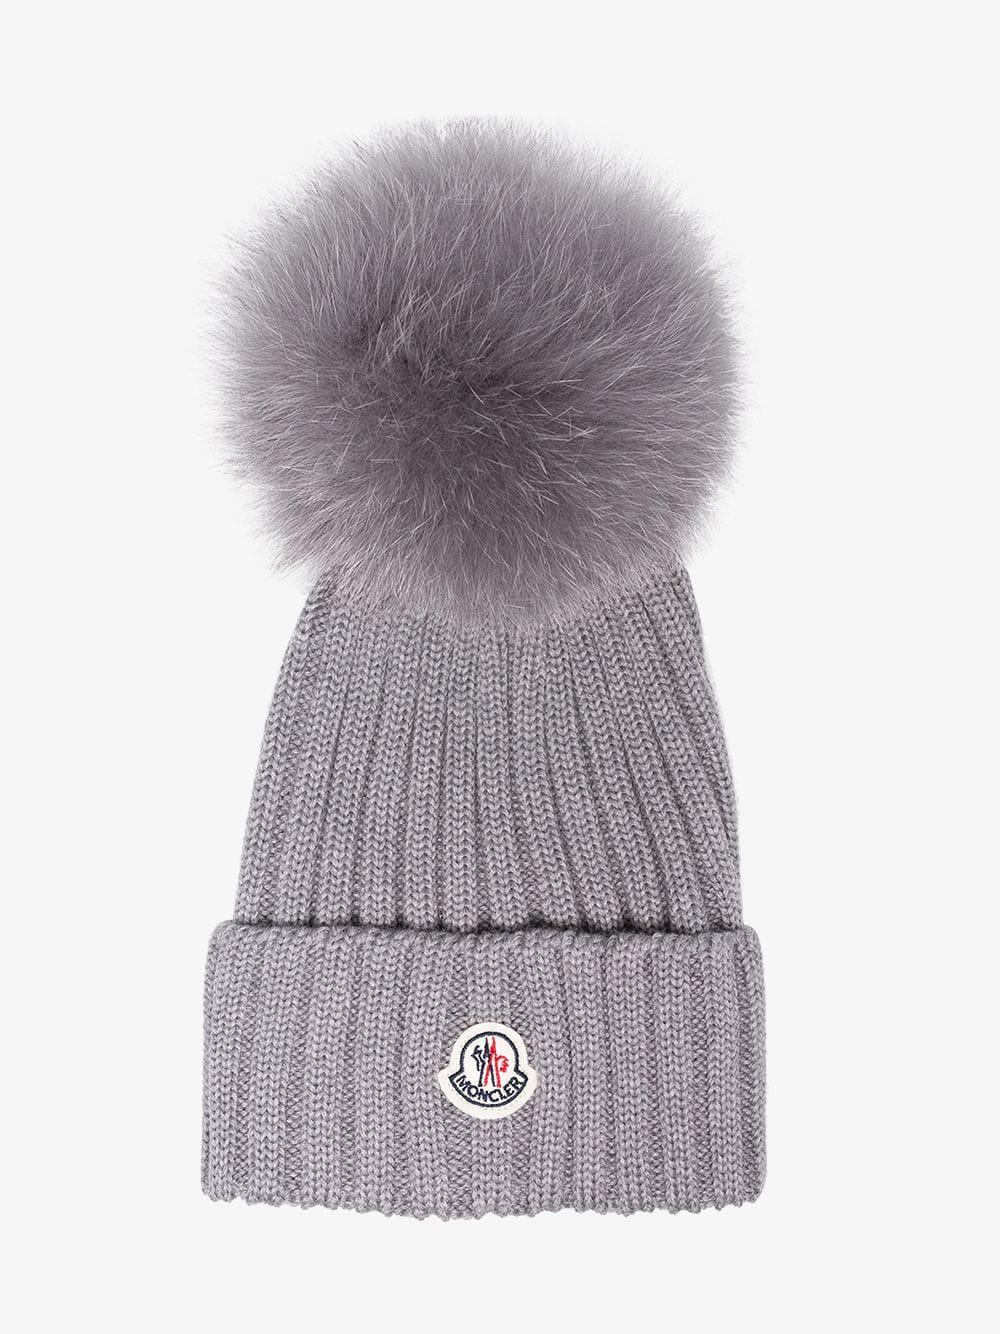 7261c59e678 Lyst - Moncler Grey Wool Beanie Hat With Pom Pom in Gray